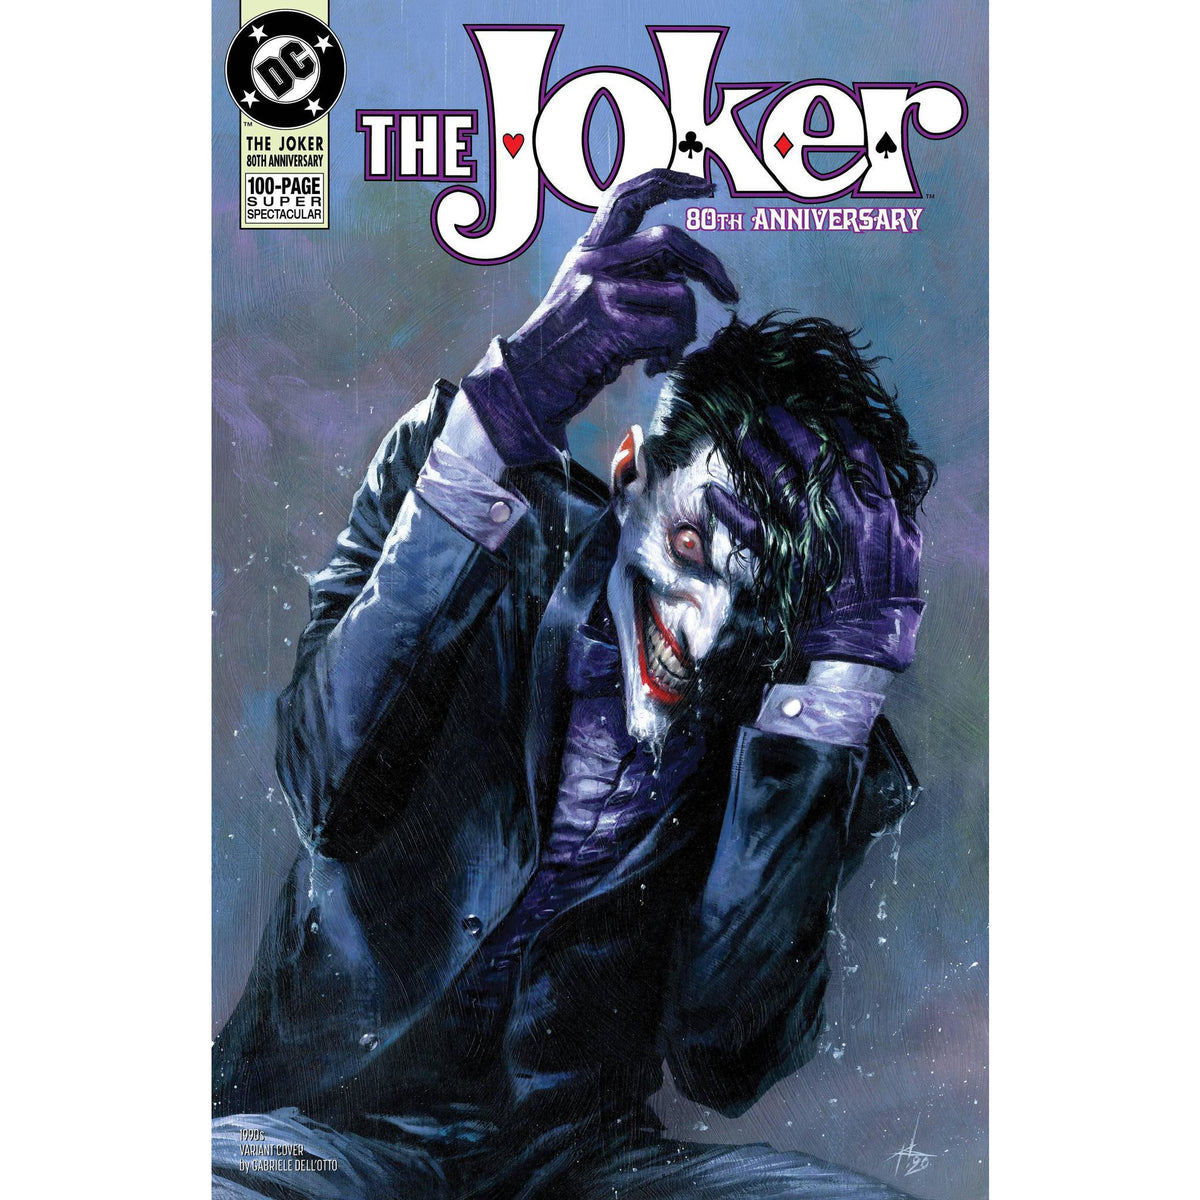 JOKER 80TH ANNIVERSARY 100 PAGE SUPER SPECTACULAR #1 1990s DELLOTTO VARIANT COVER